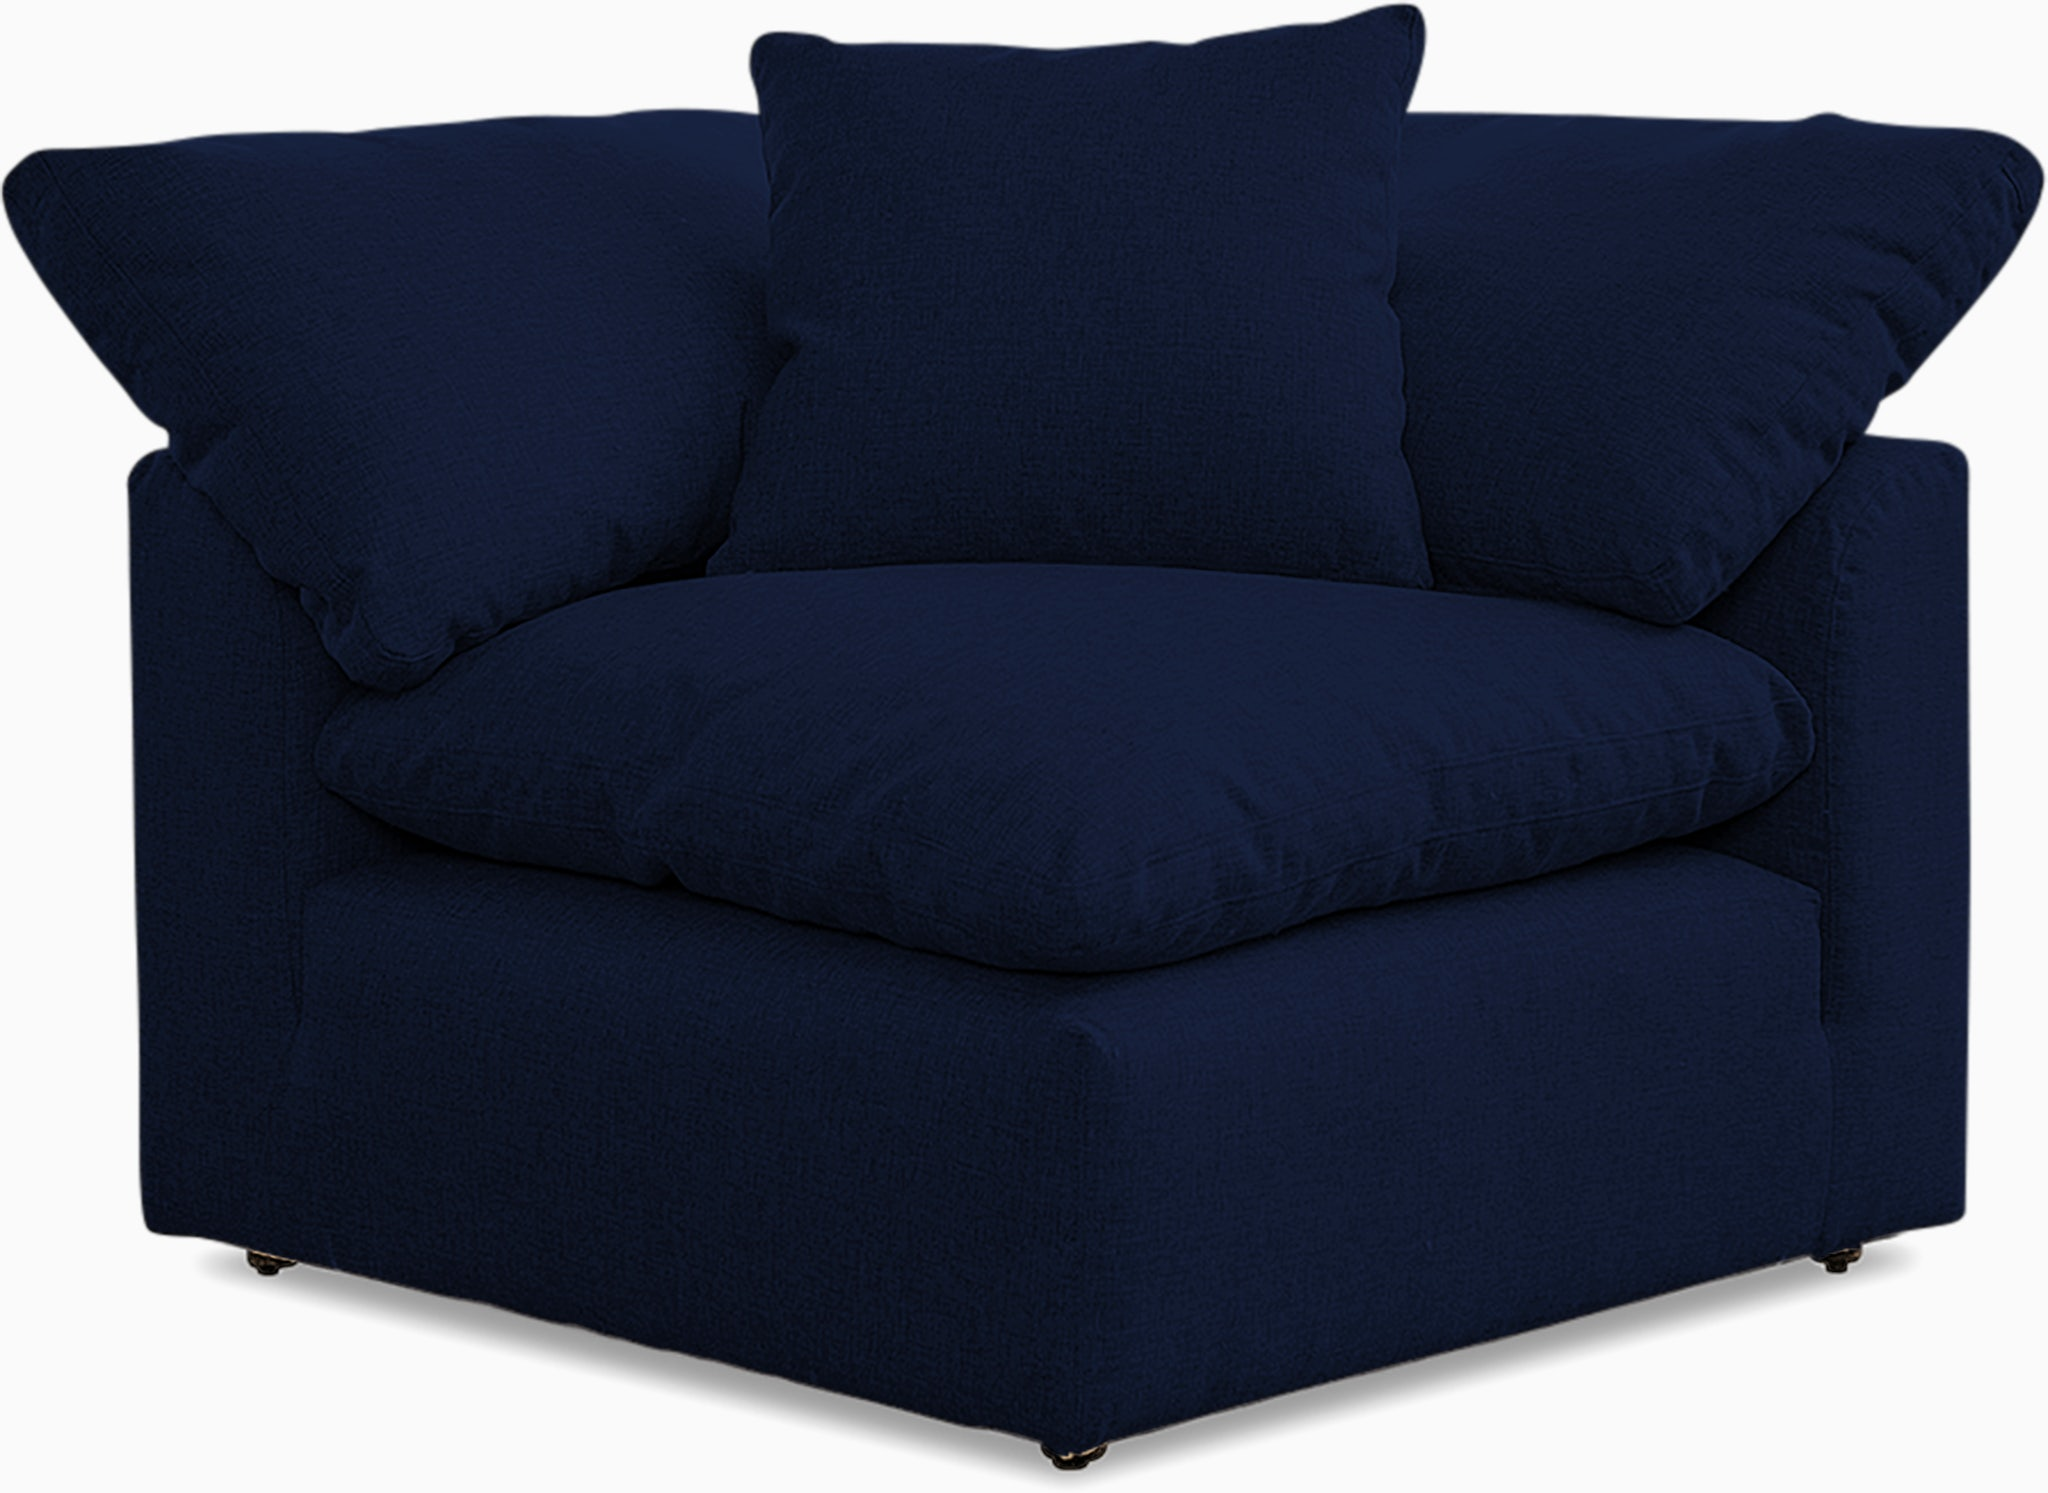 bryant corner chair royale cobalt